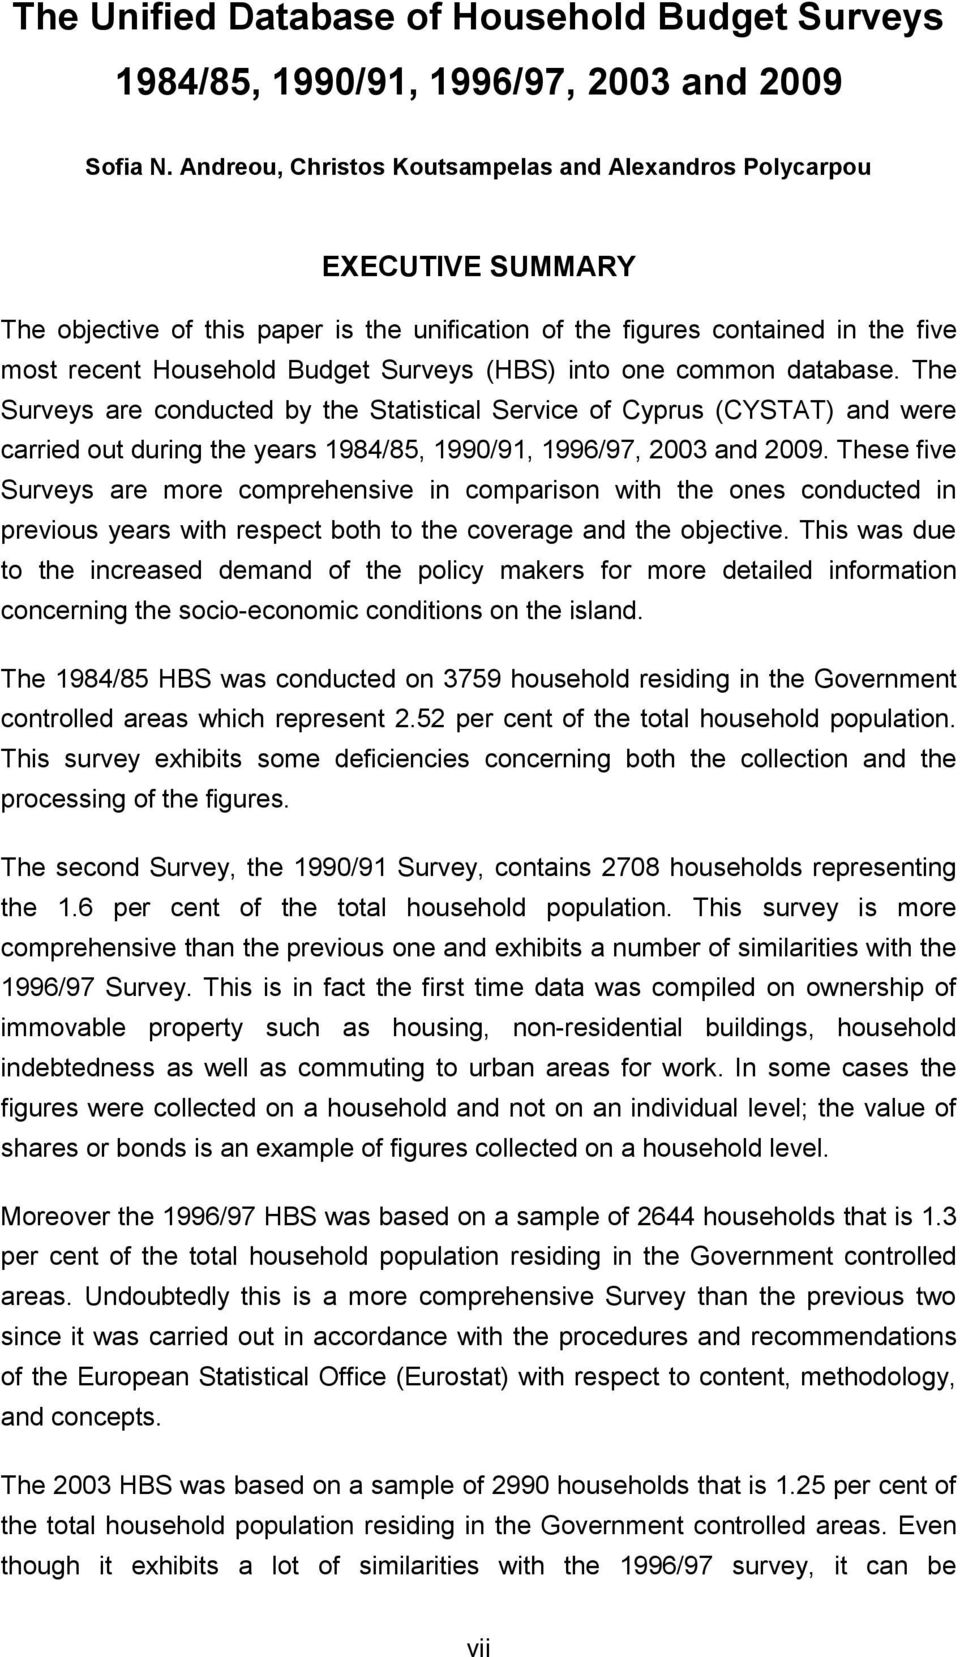 (HBS) into one common database. The Surveys are conducted by the Statistical Service of Cyprus (CYSTAT) and were carried out during the years 1984/85, 1990/91, 1996/97, 2003 and 2009.